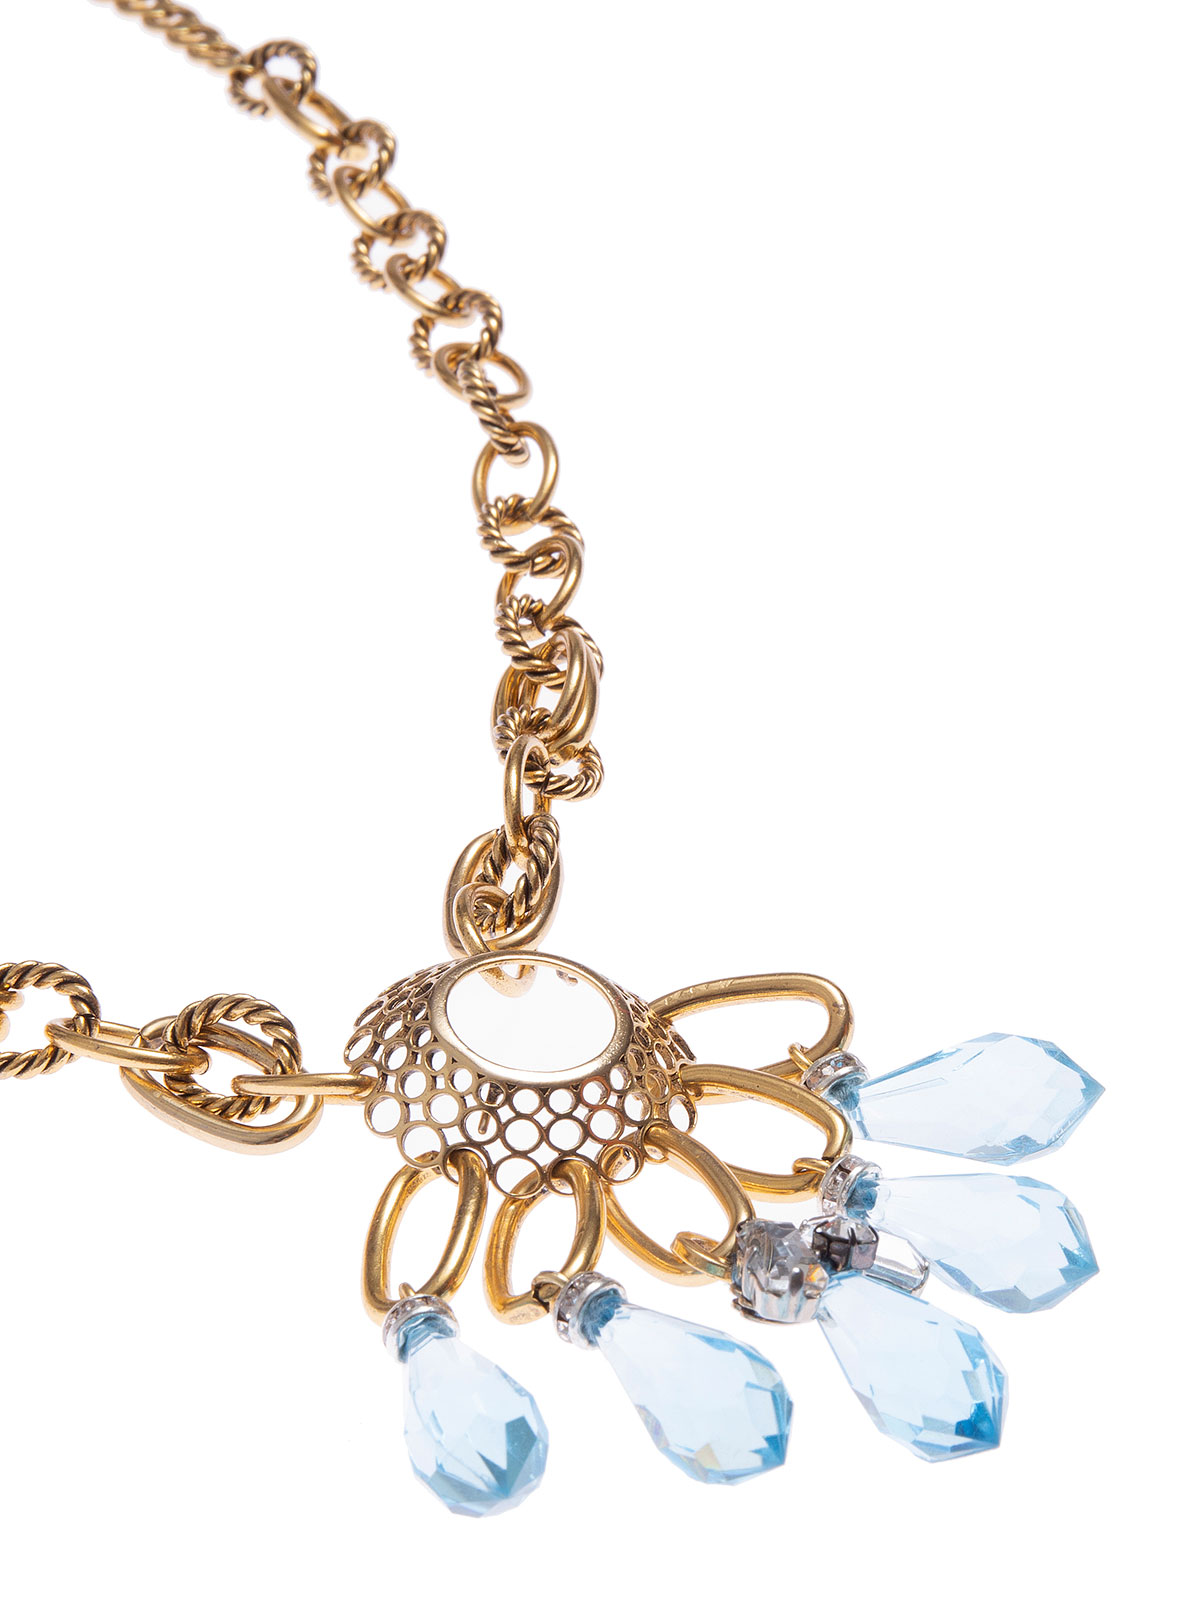 Necklace with round charm and plexiglass  beads